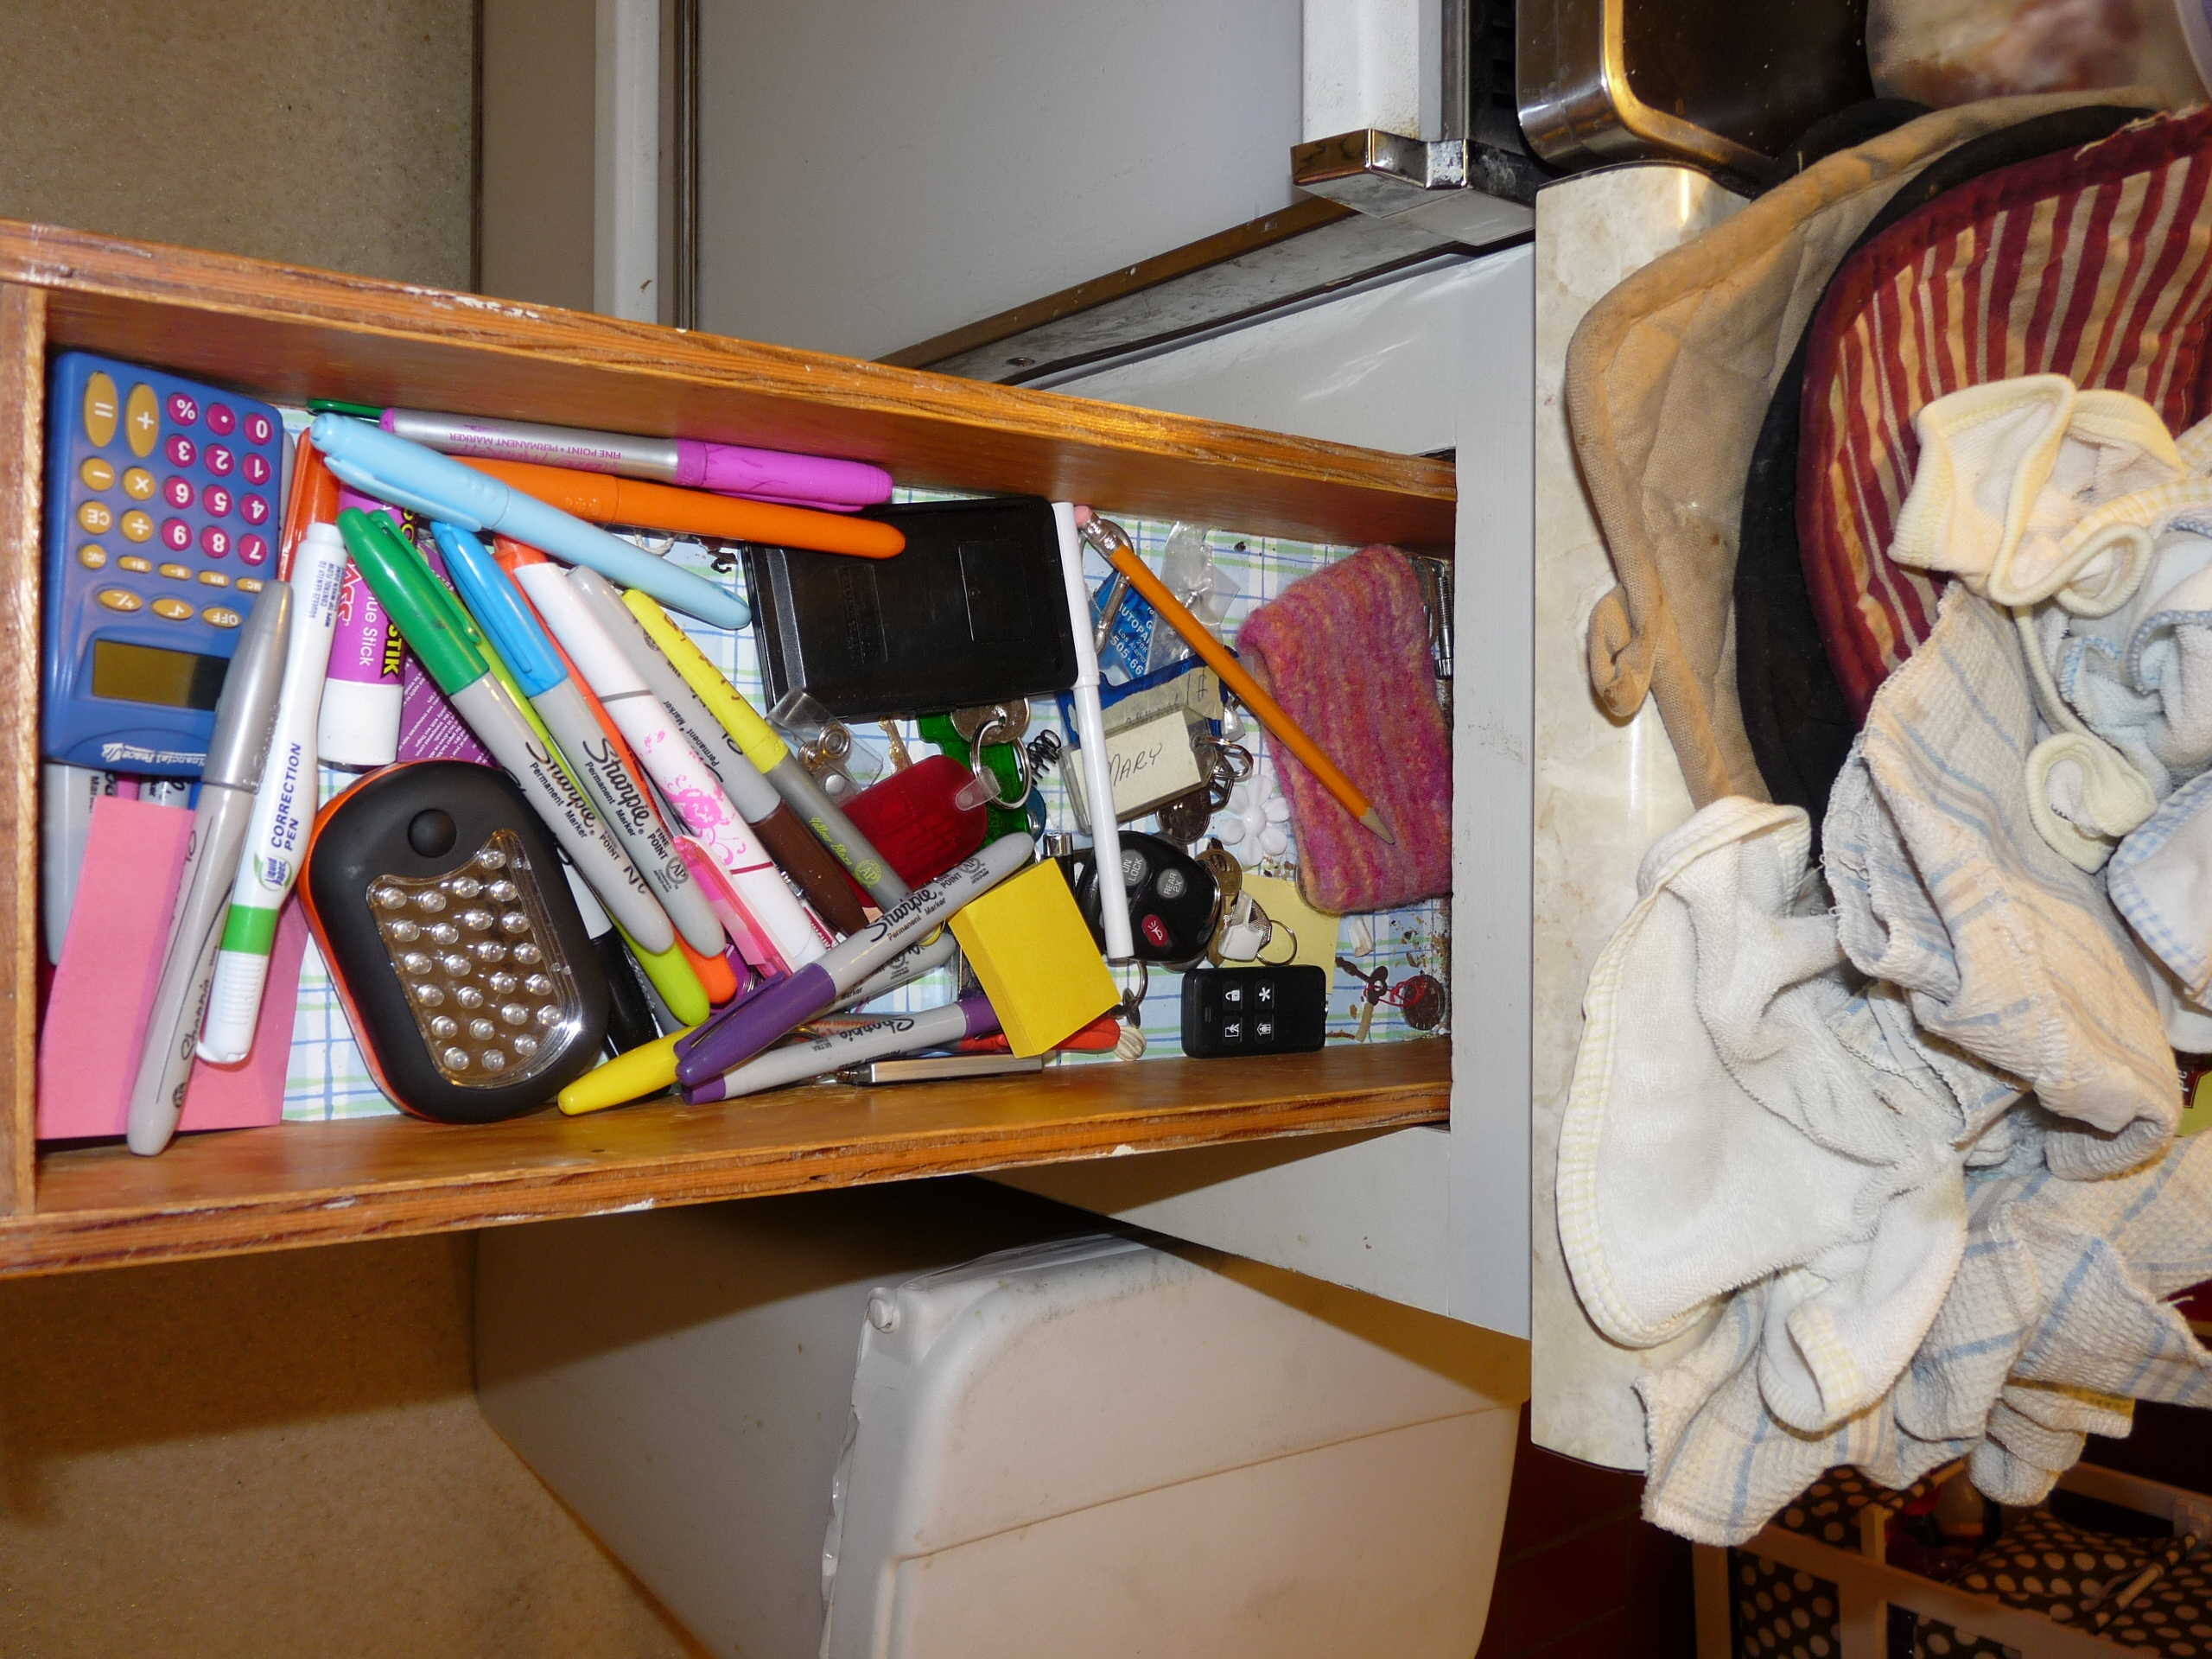 What s in your kitchen junk drawer that nolen chick for Kitchen junk drawer